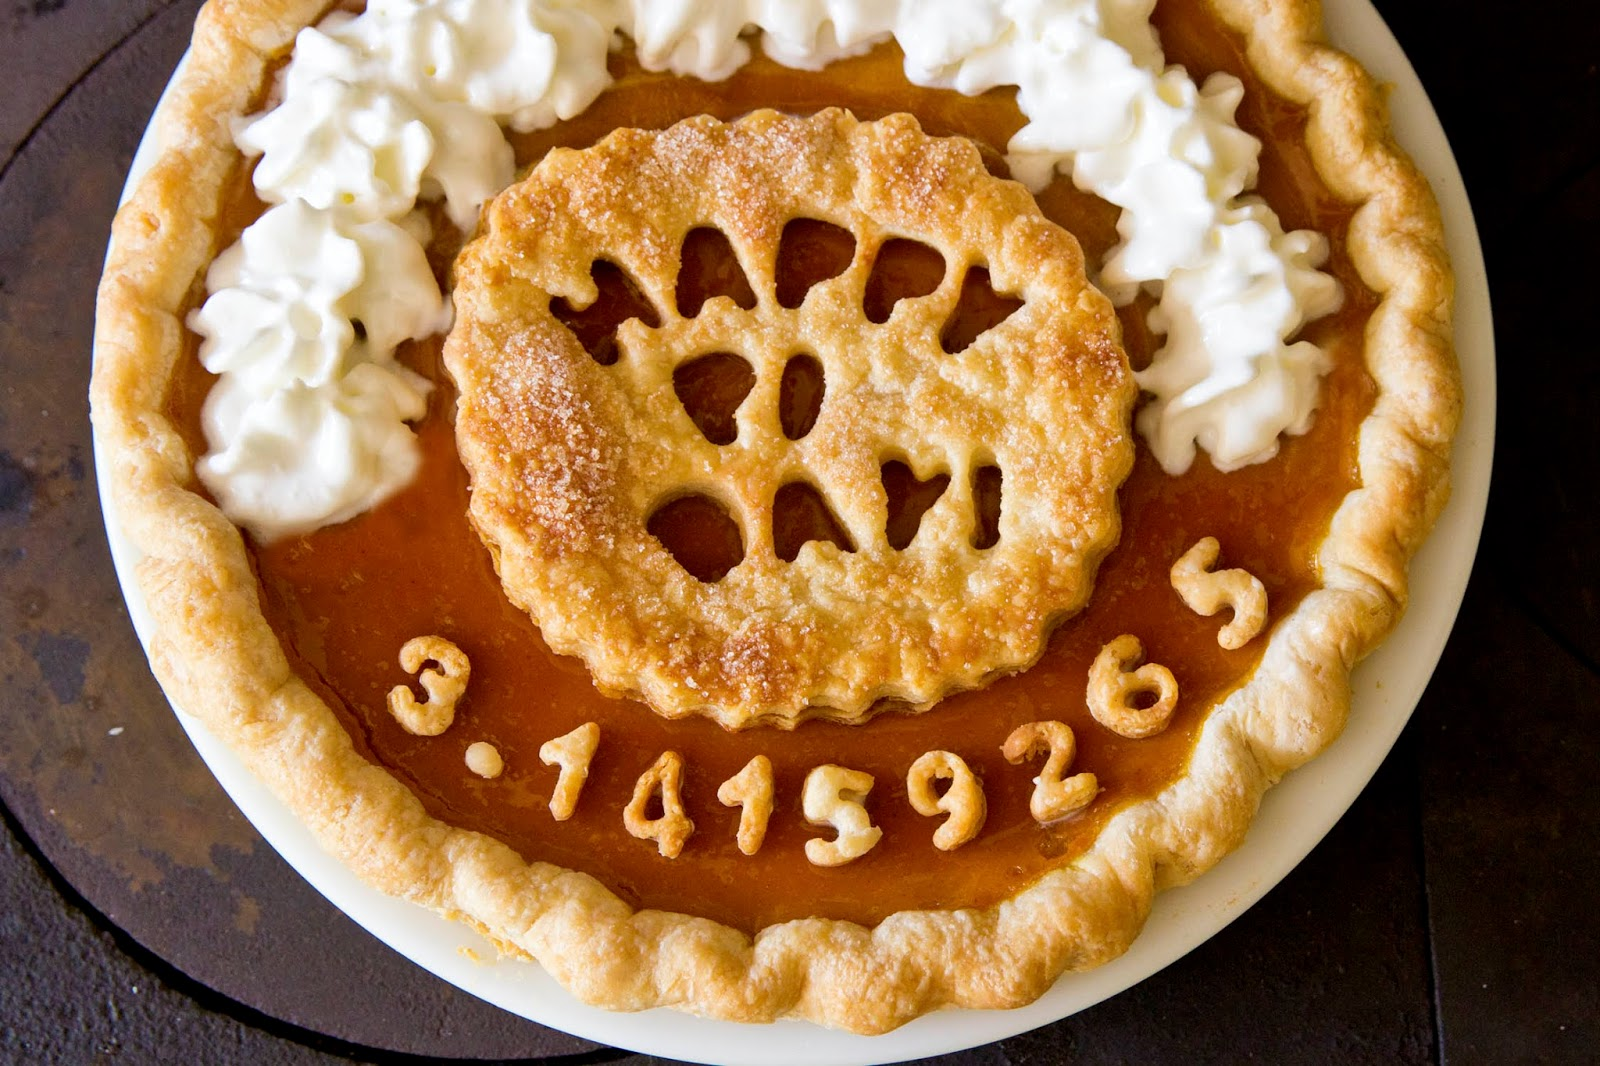 My Take On Pi Would Be To Celebrate Pi Day With Pie!